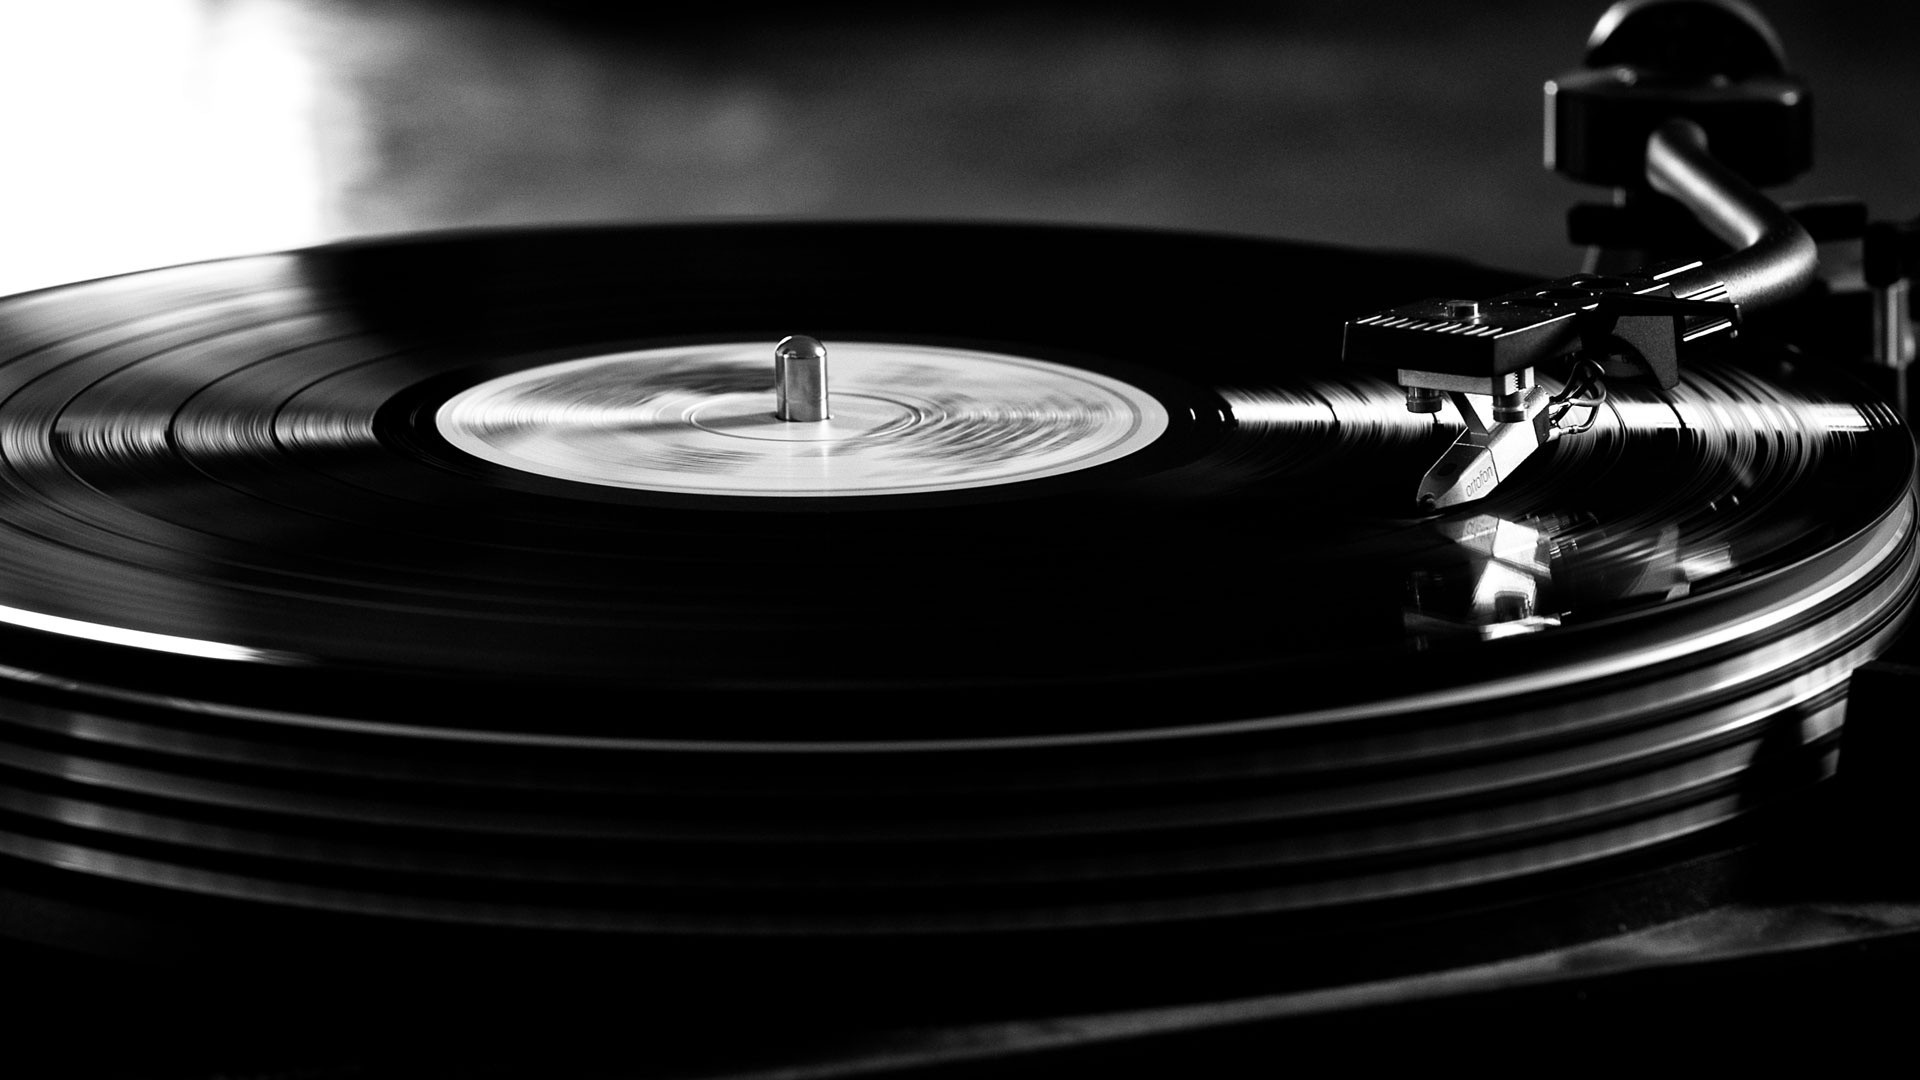 HD vinyl could hit stores next year